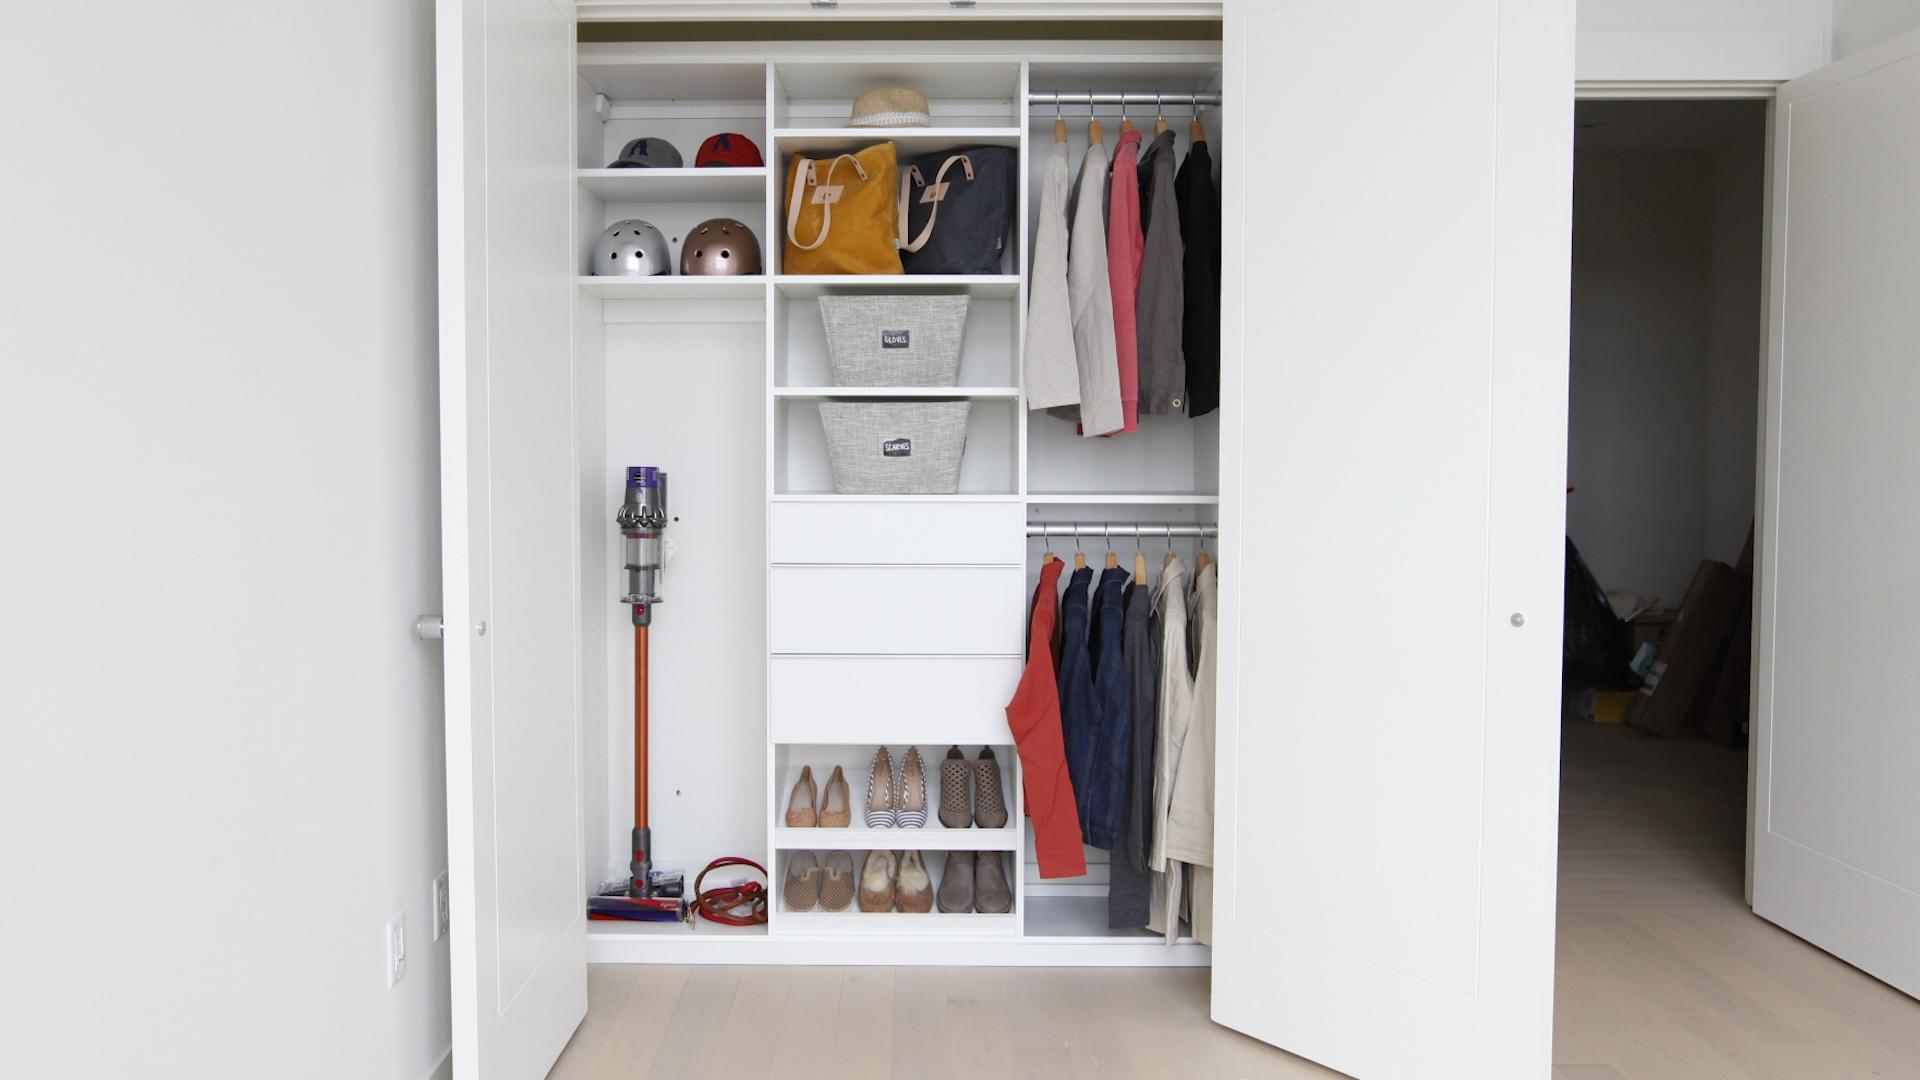 6 Entryway Closet Organizing Ideas To Simplify Your Morning Routine Real Simple